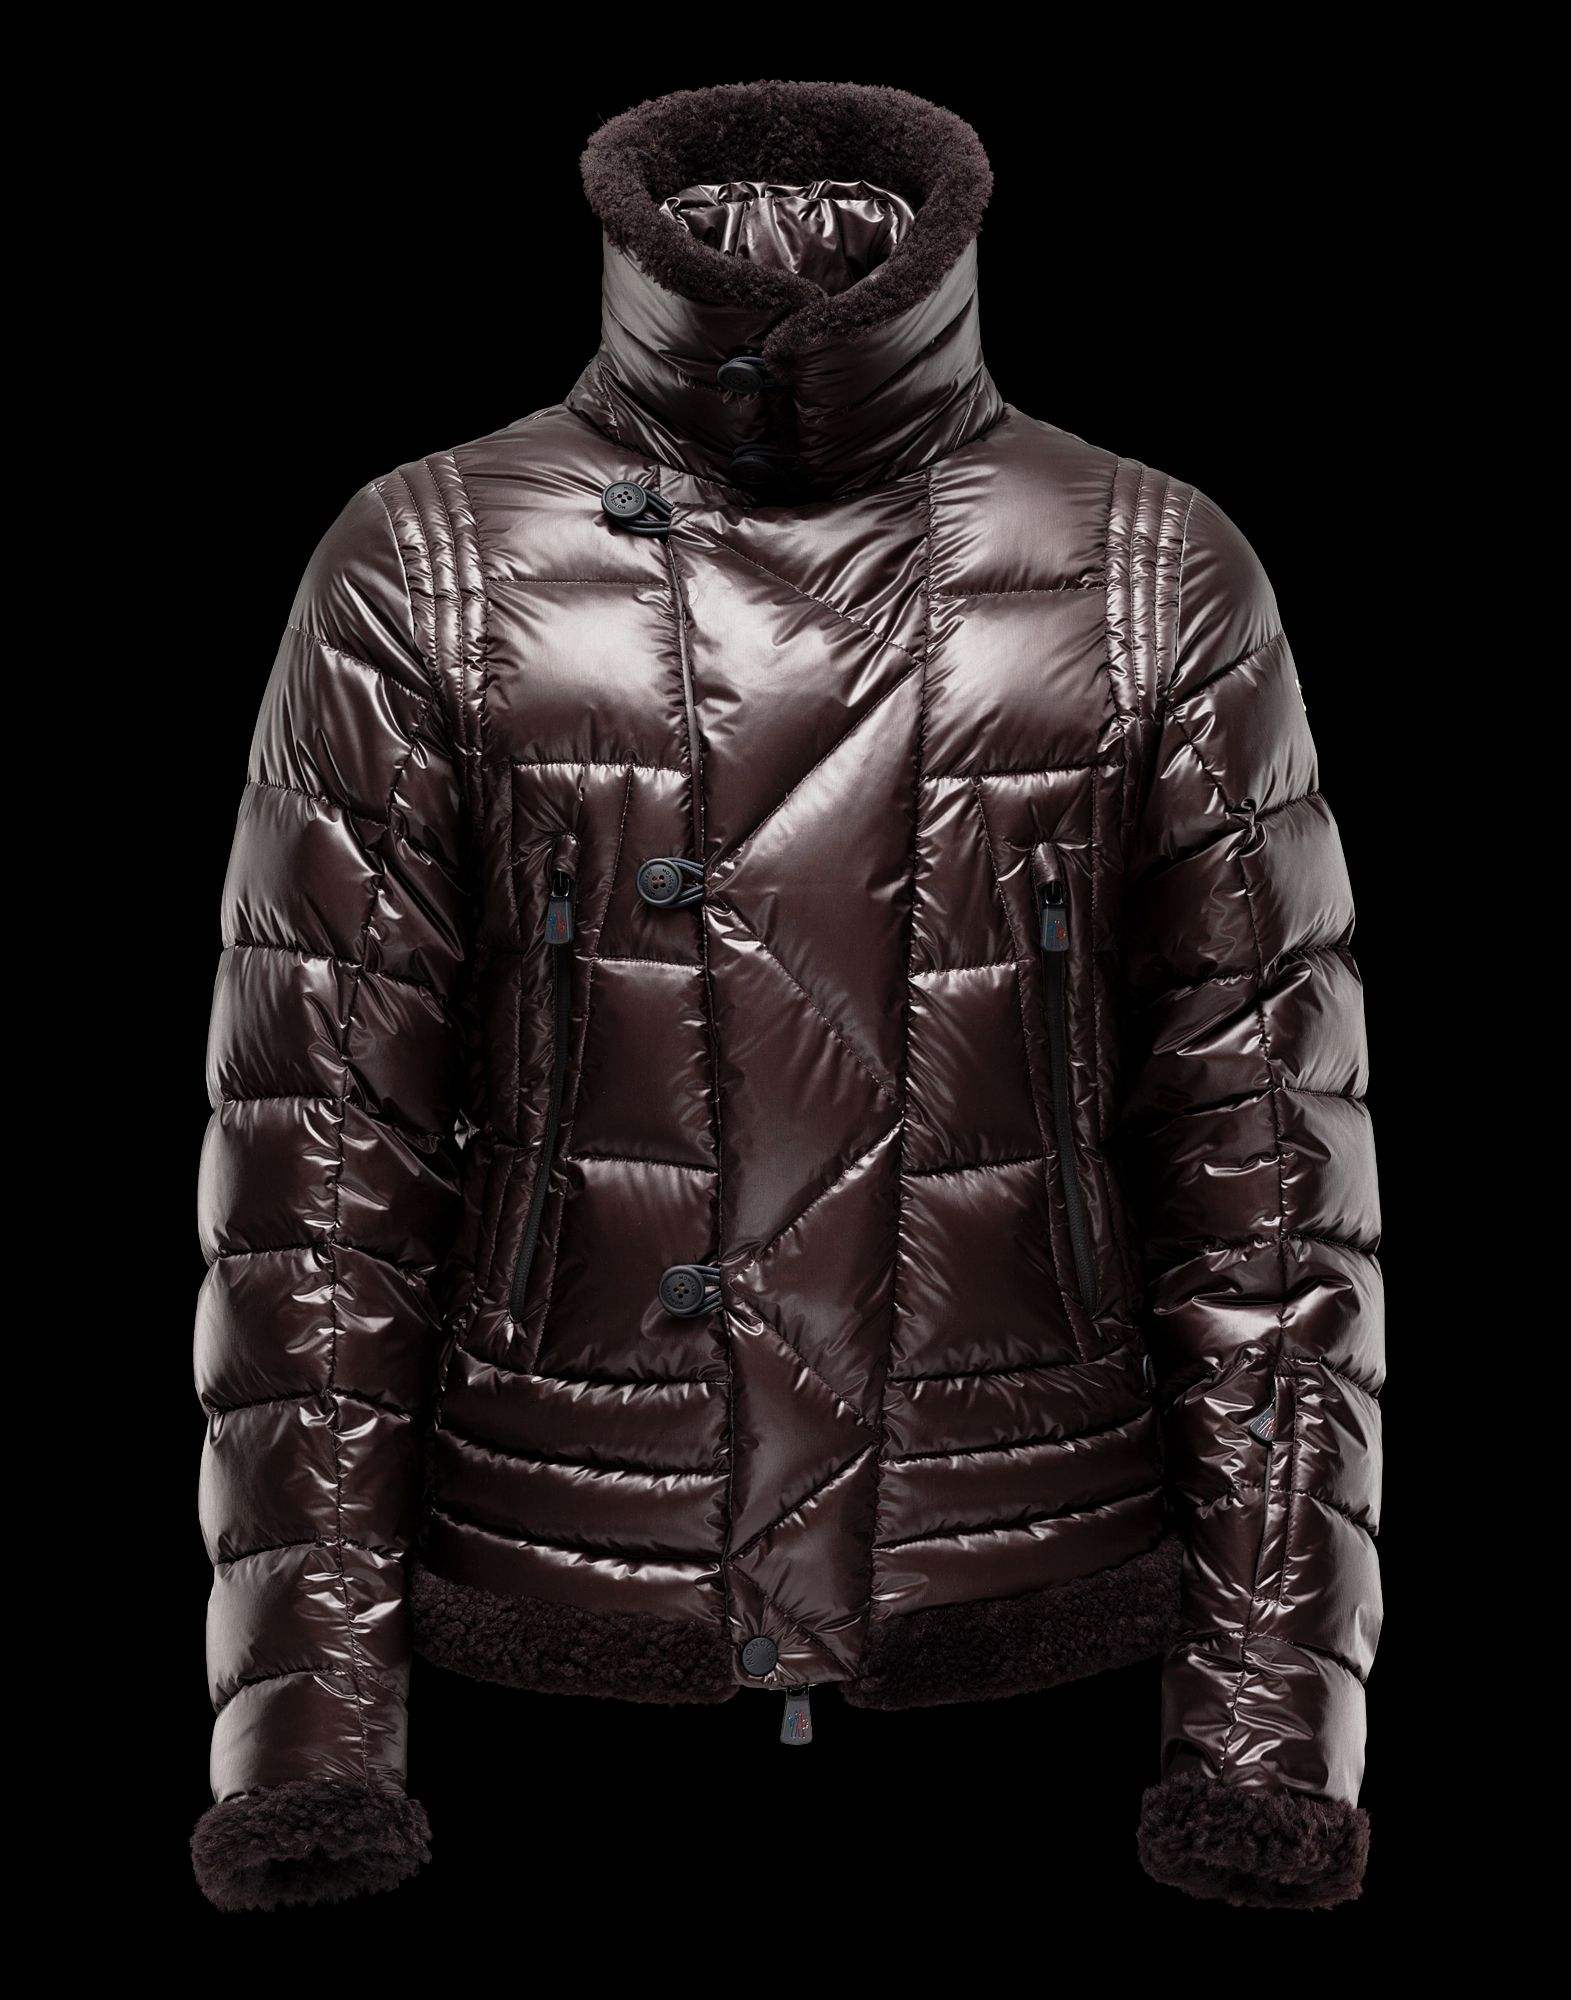 f0d817a8a where to buy cheap moncler jackets, cheap moncler jackets